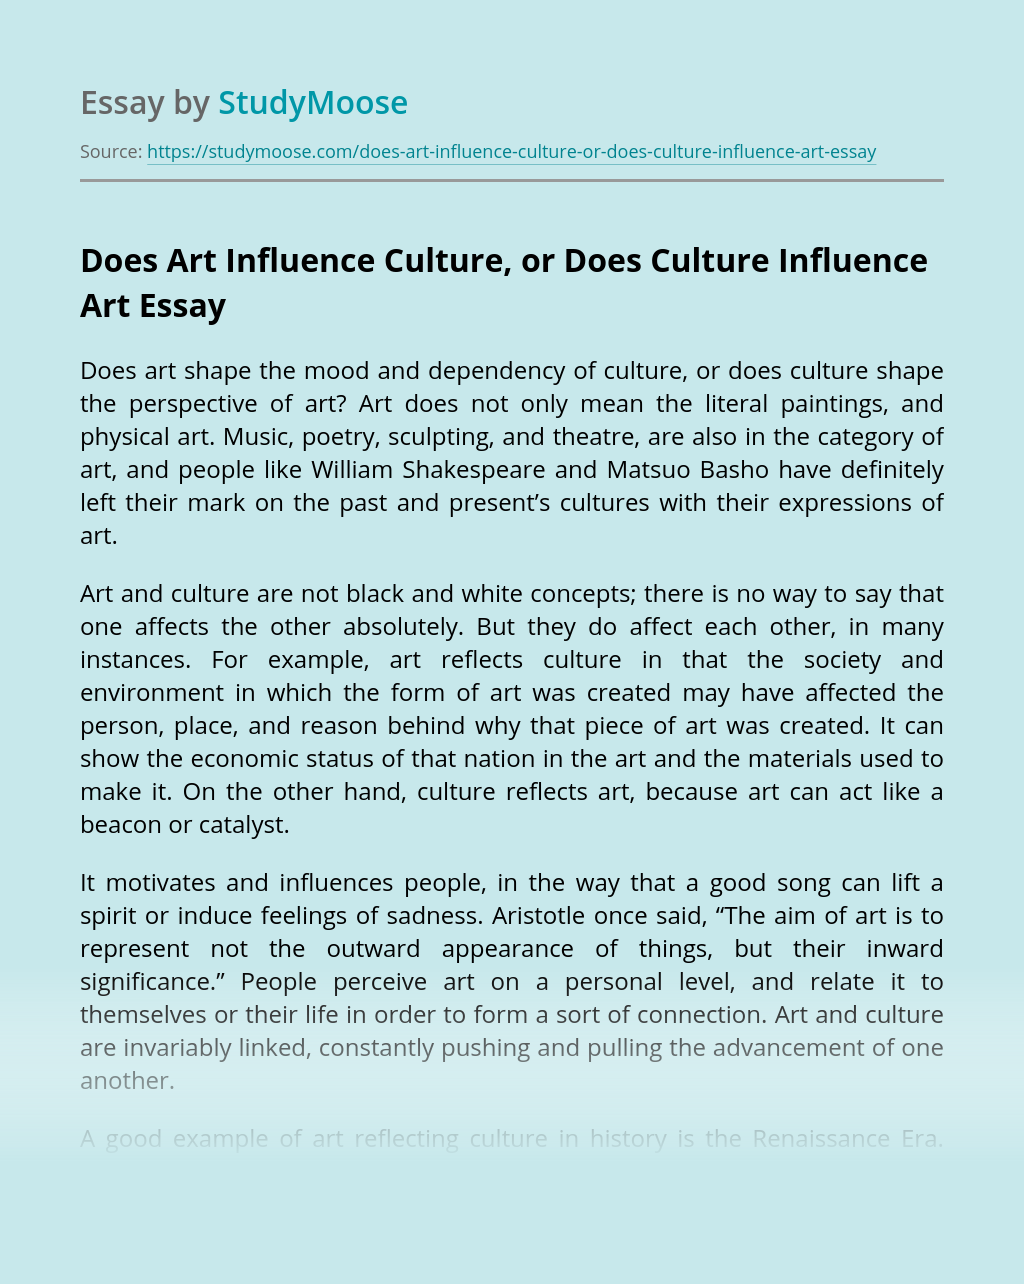 Does Art Influence Culture, or Does Culture Influence Art